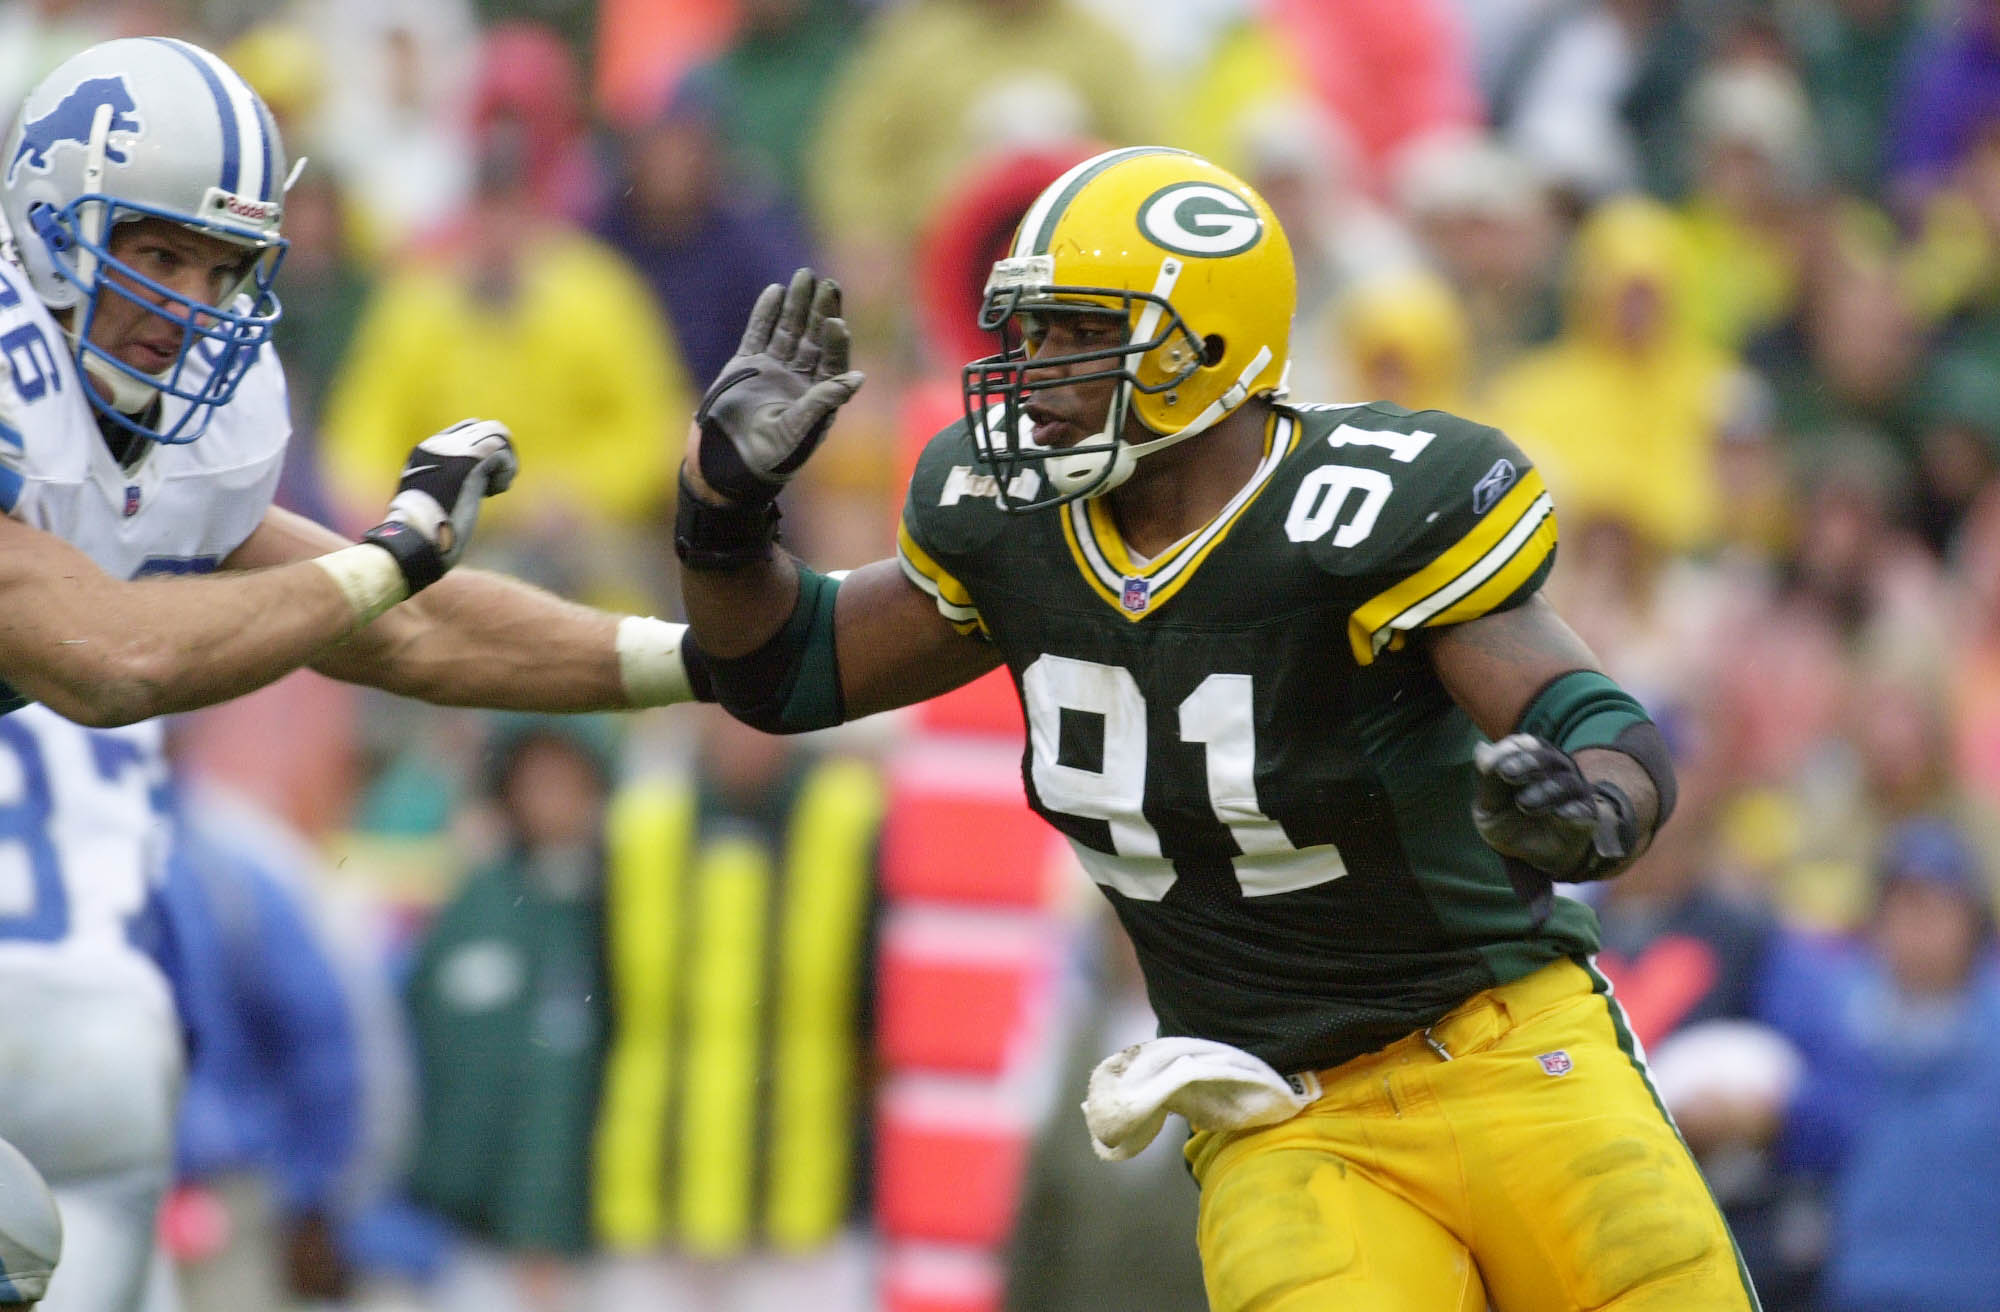 09 Sep 2001: Joe Johnson of the Green Bay Packers moves against the Detroit Lions during the game at Lambeau Field in Green Bay, Wisconsin. The Packers defeated the Lions 28-6. DIGITAL IMAGE. Mandatory Credit: Jonathan Daniel/Allsport